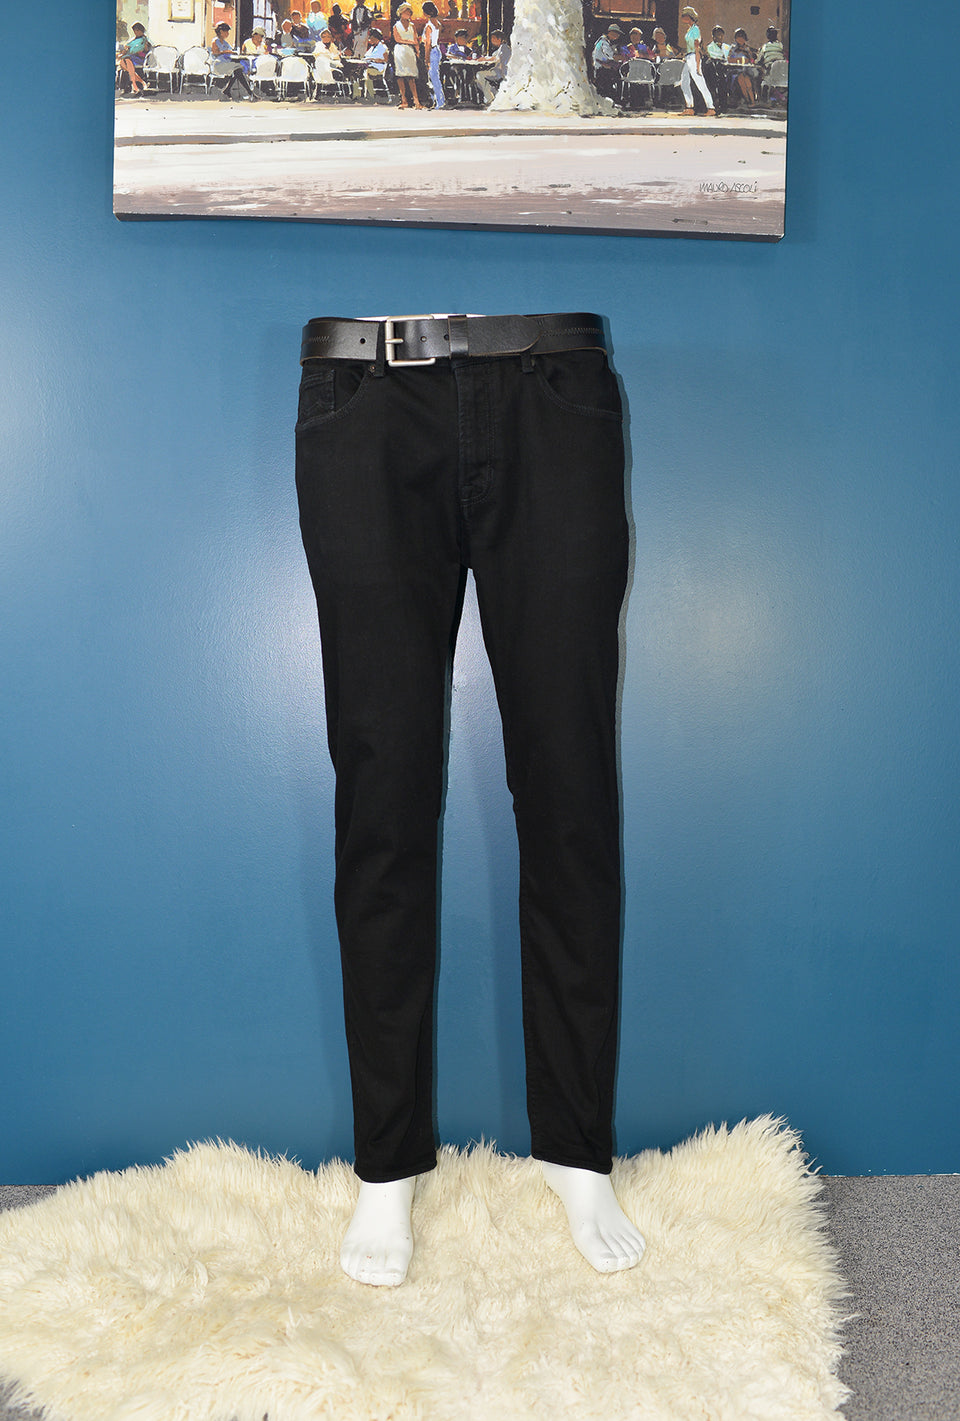 KINGS OF INDIGO 'Daniel' Organic Cotton Jeans in Stay Black, W33 L32. Pre-loved.